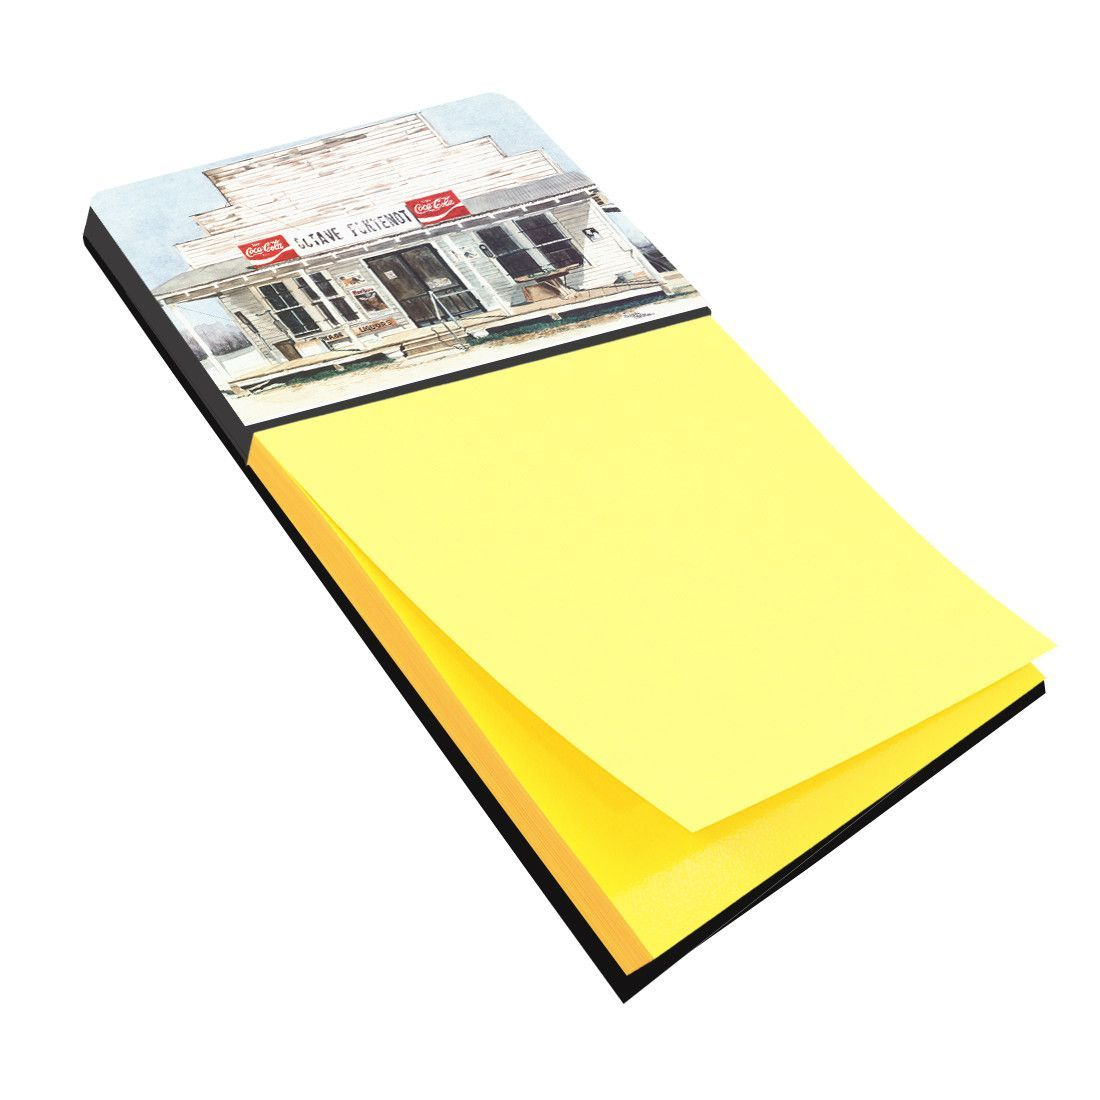 Octave Fontenot Refiillable Sticky Note Holder or Postit Note Dispenser 8111SN